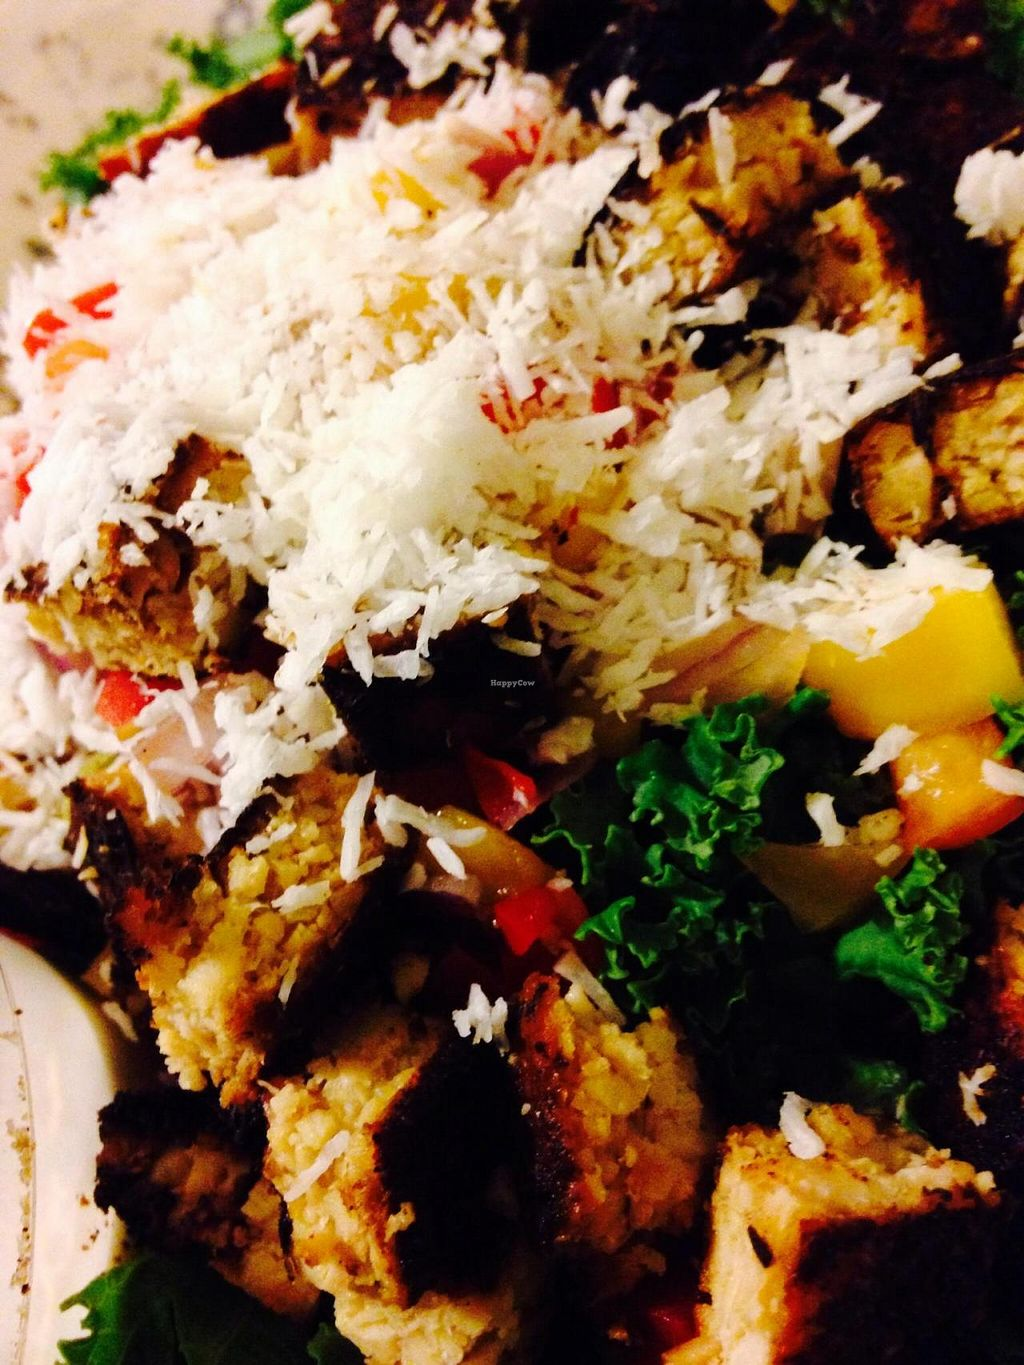 """Photo of CLOSED: Native Foods - Conn Ave  by <a href=""""/members/profile/cookiem"""">cookiem</a> <br/>Caribbean jerk kale salad <br/> November 9, 2014  - <a href='/contact/abuse/image/51093/85134'>Report</a>"""